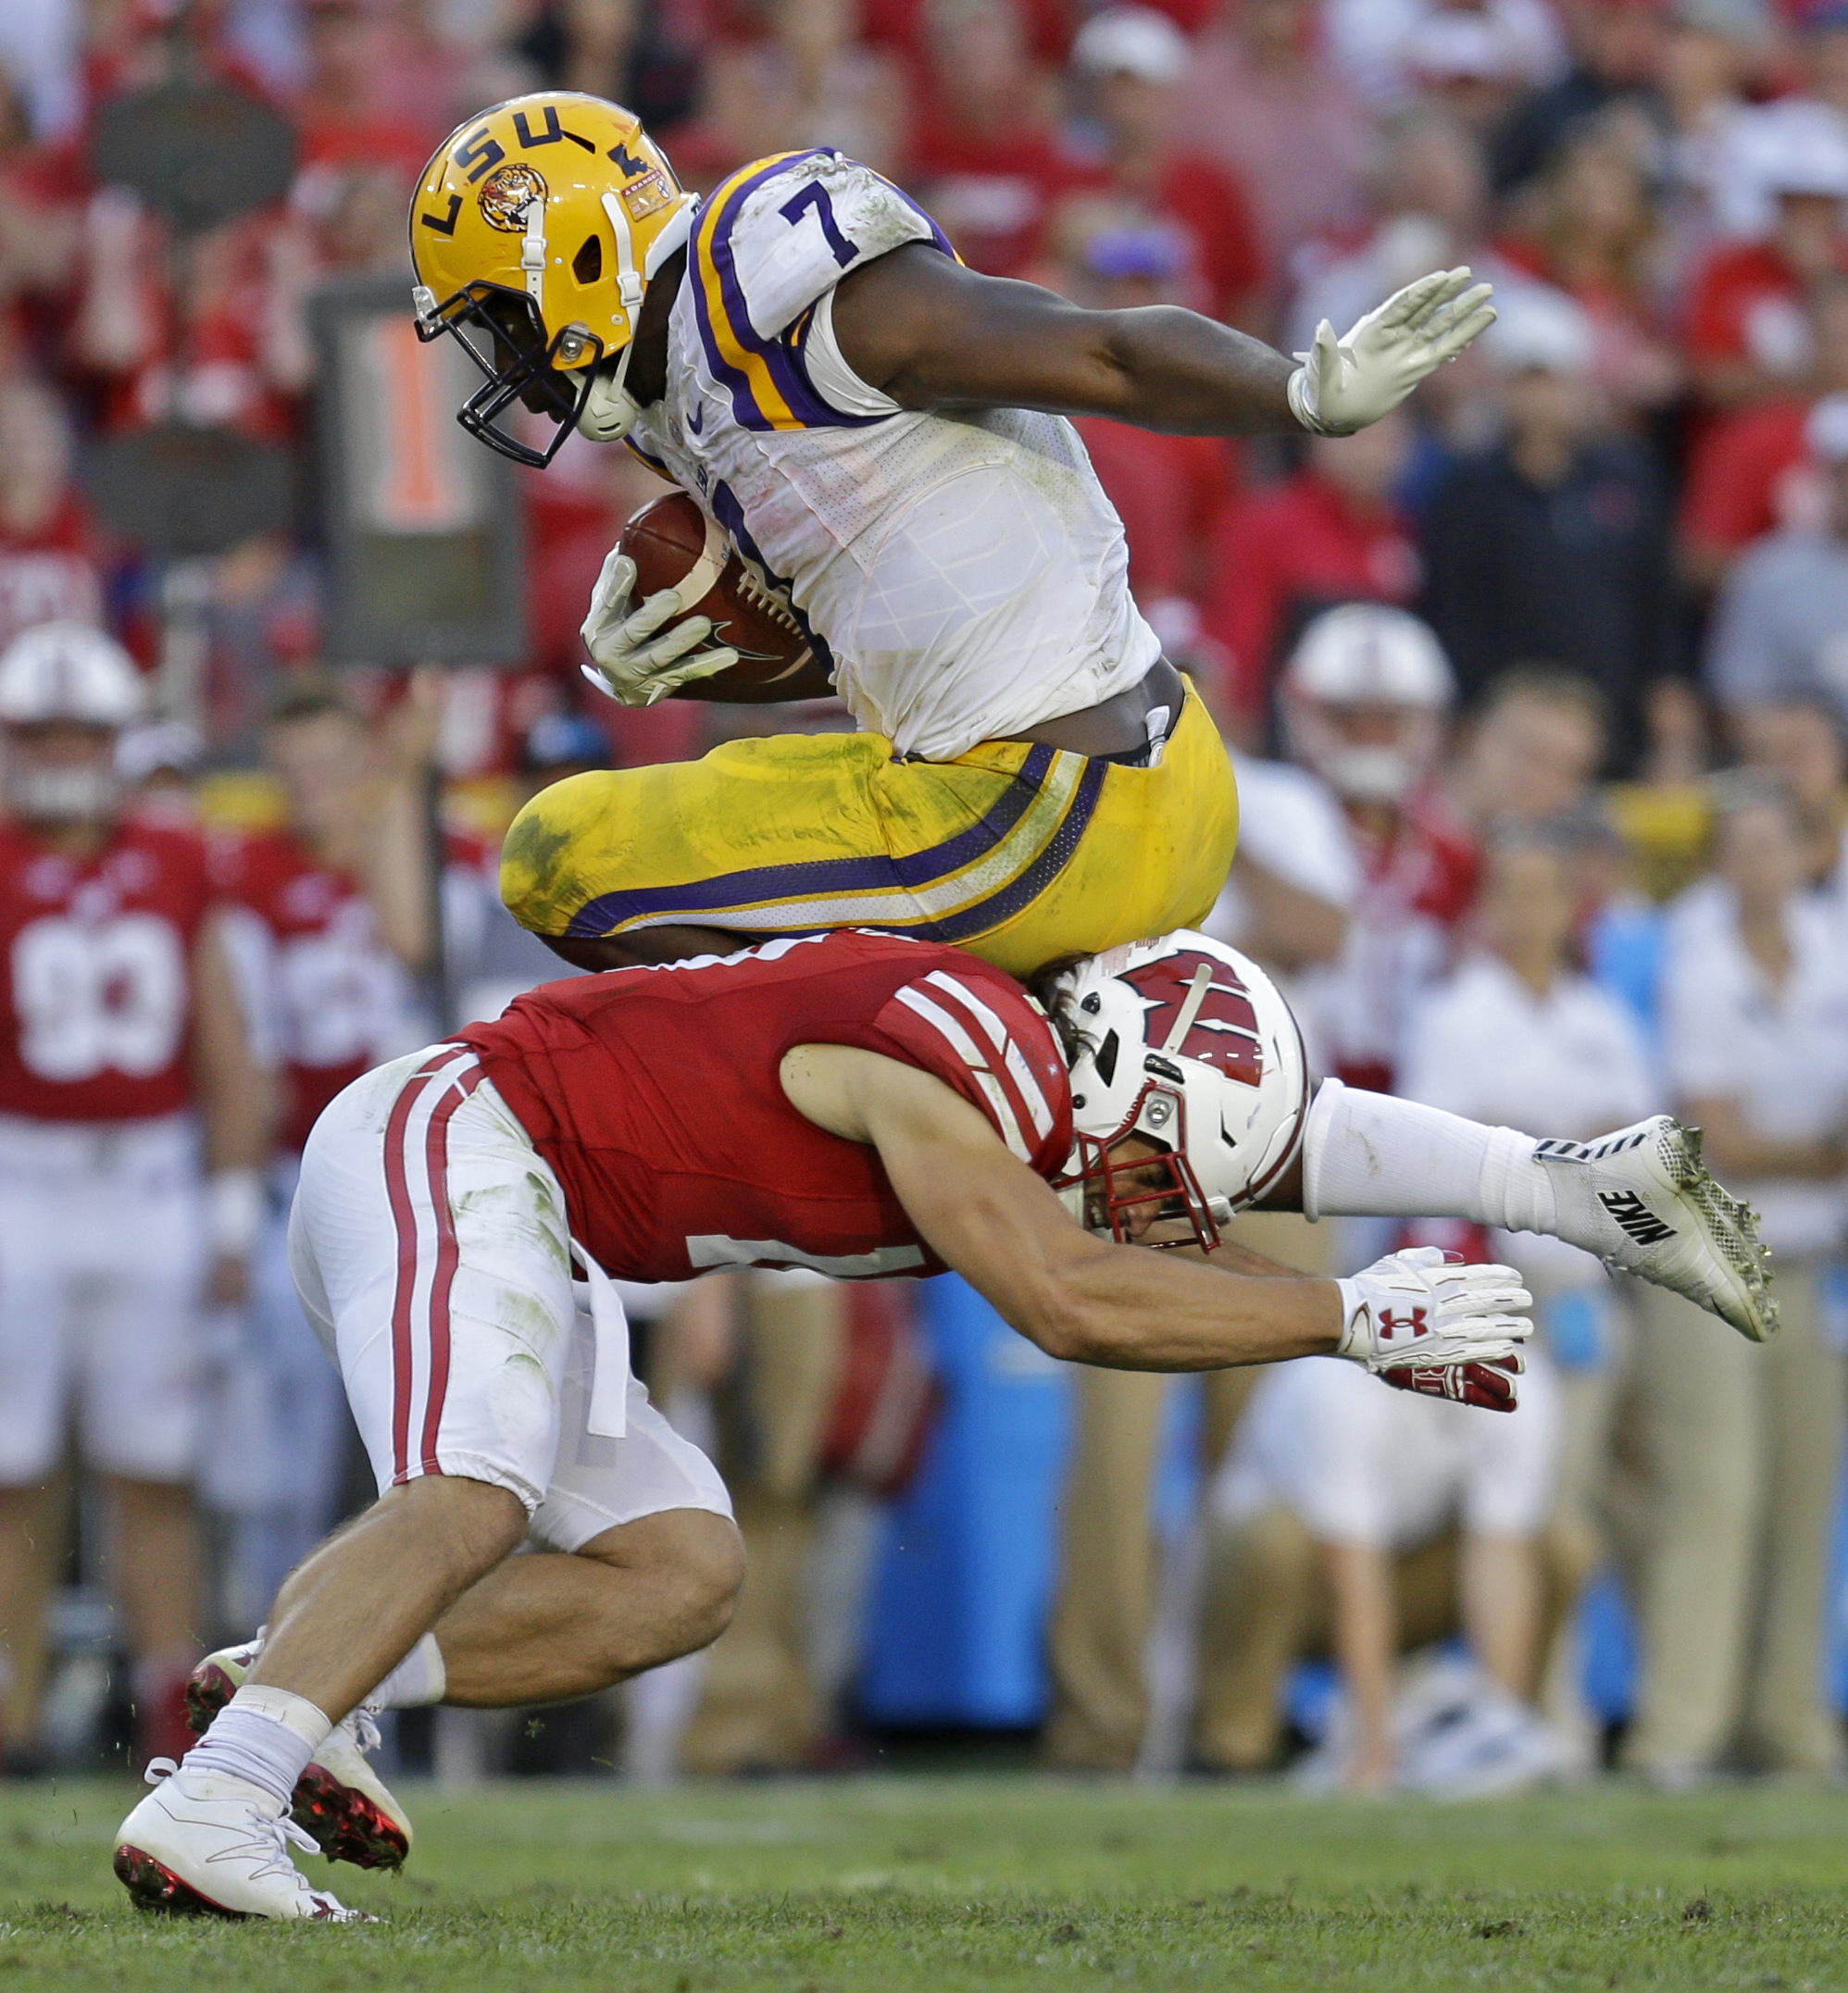 FILE - In this Sept. 3, 2016, file photo, LSU's Leonard Fournette is tackled by Wisconsin's Leo Musso during an NCAA college football game in Green Bay, Wis. The Southeastern Conference, which already made history by winning seven consecutive national cha